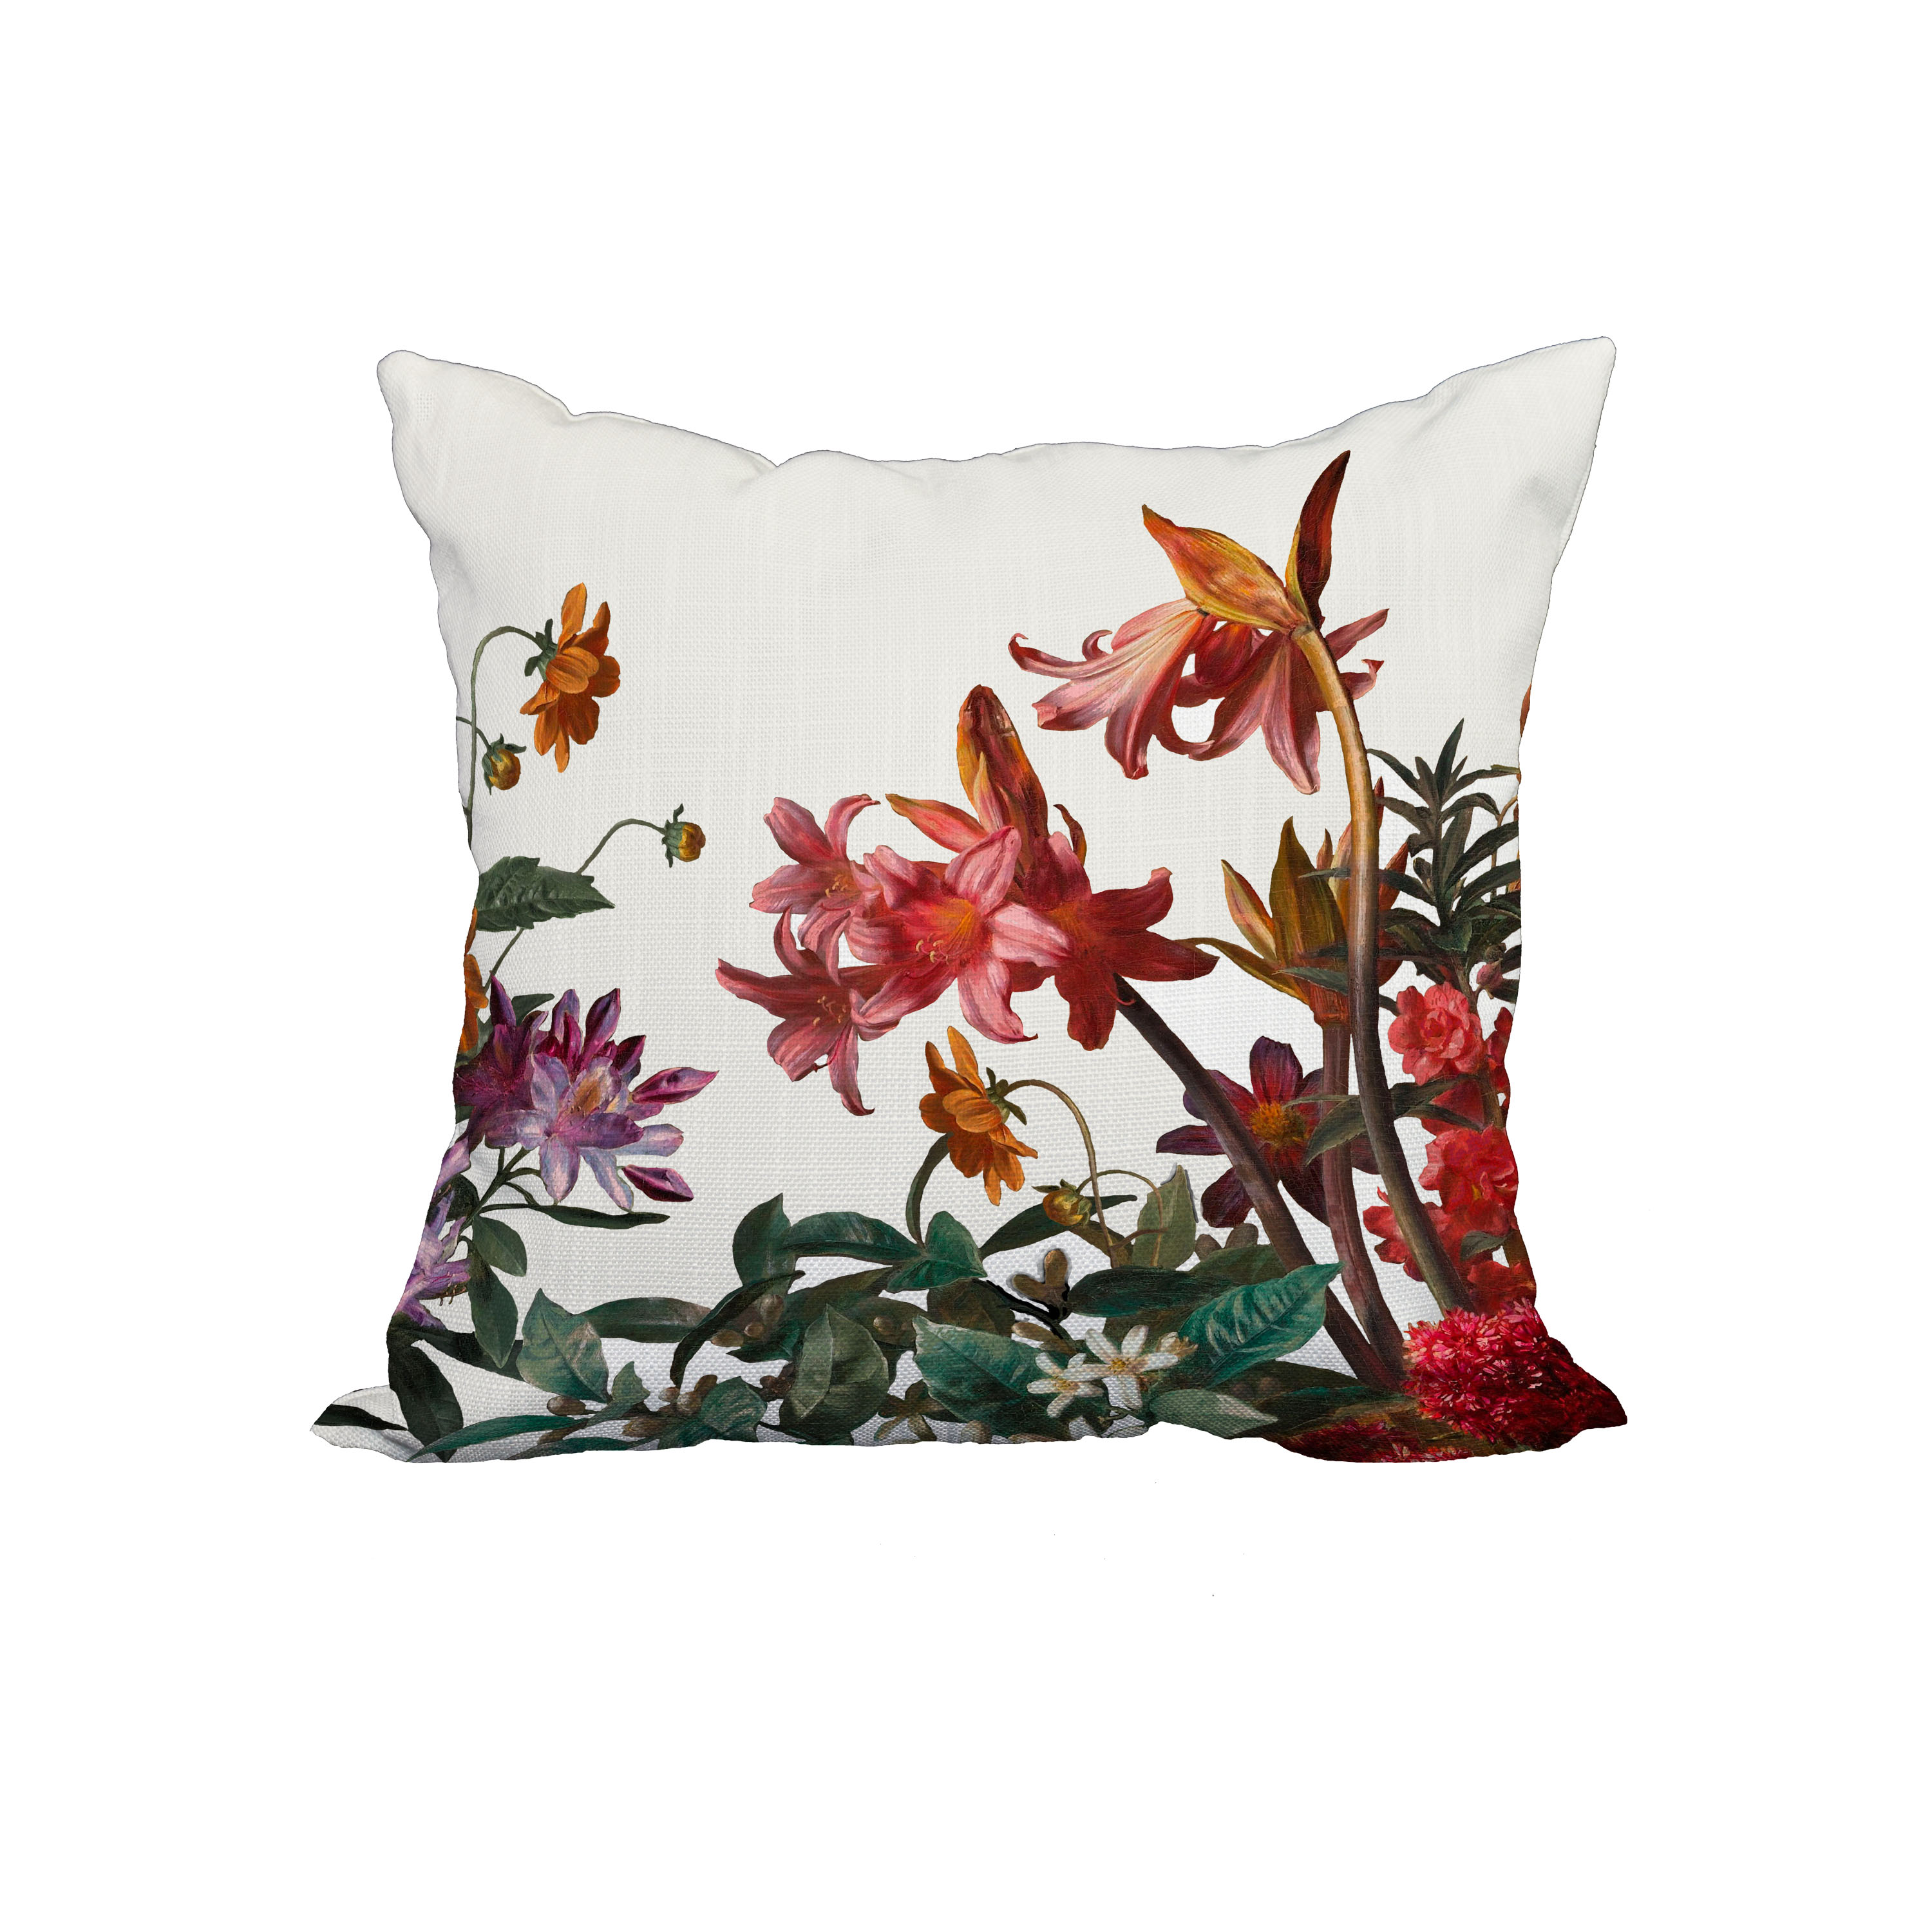 18 Inch Color Me Floral Black Floral Print Decorative Polyester Throw Pillow with Linen Texture